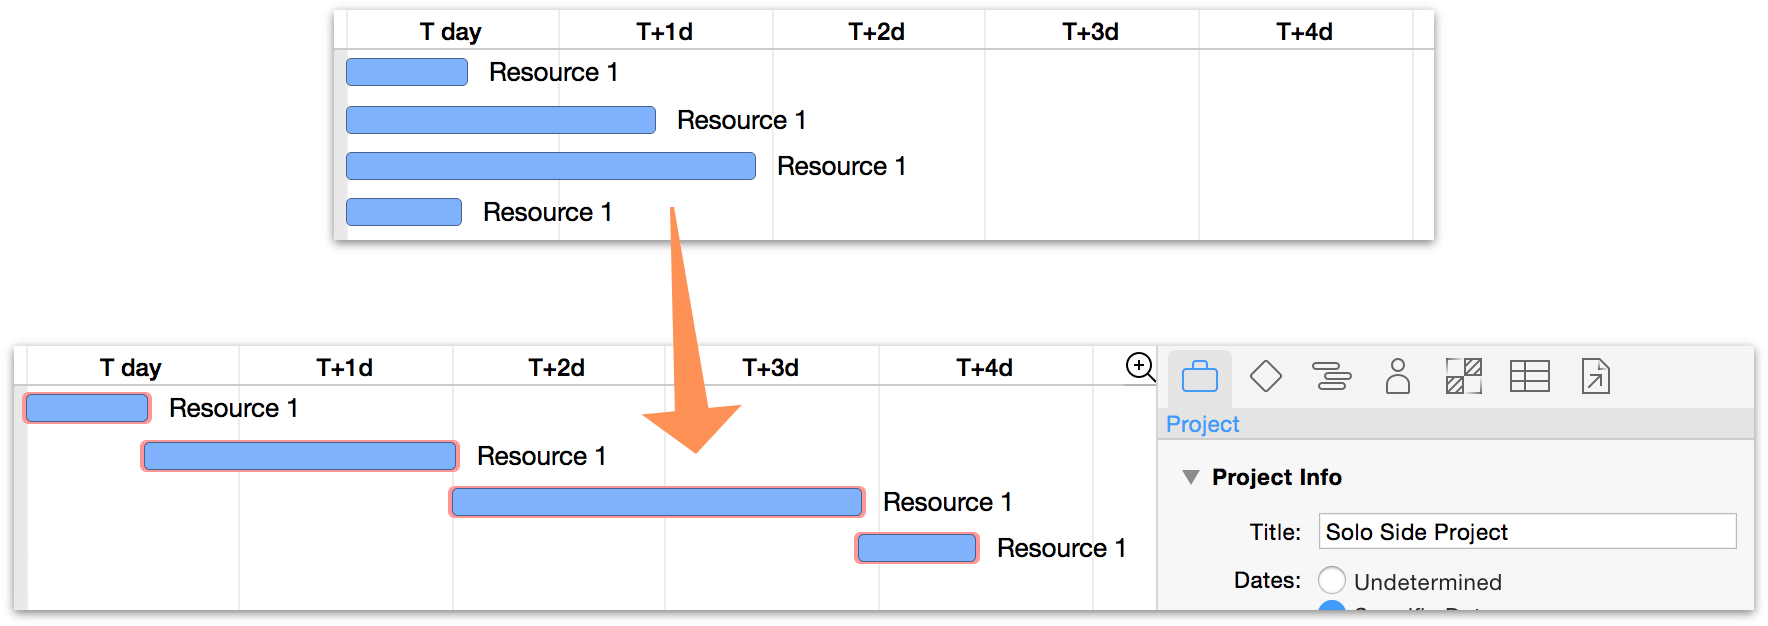 Tasks scheduled by resource availability.